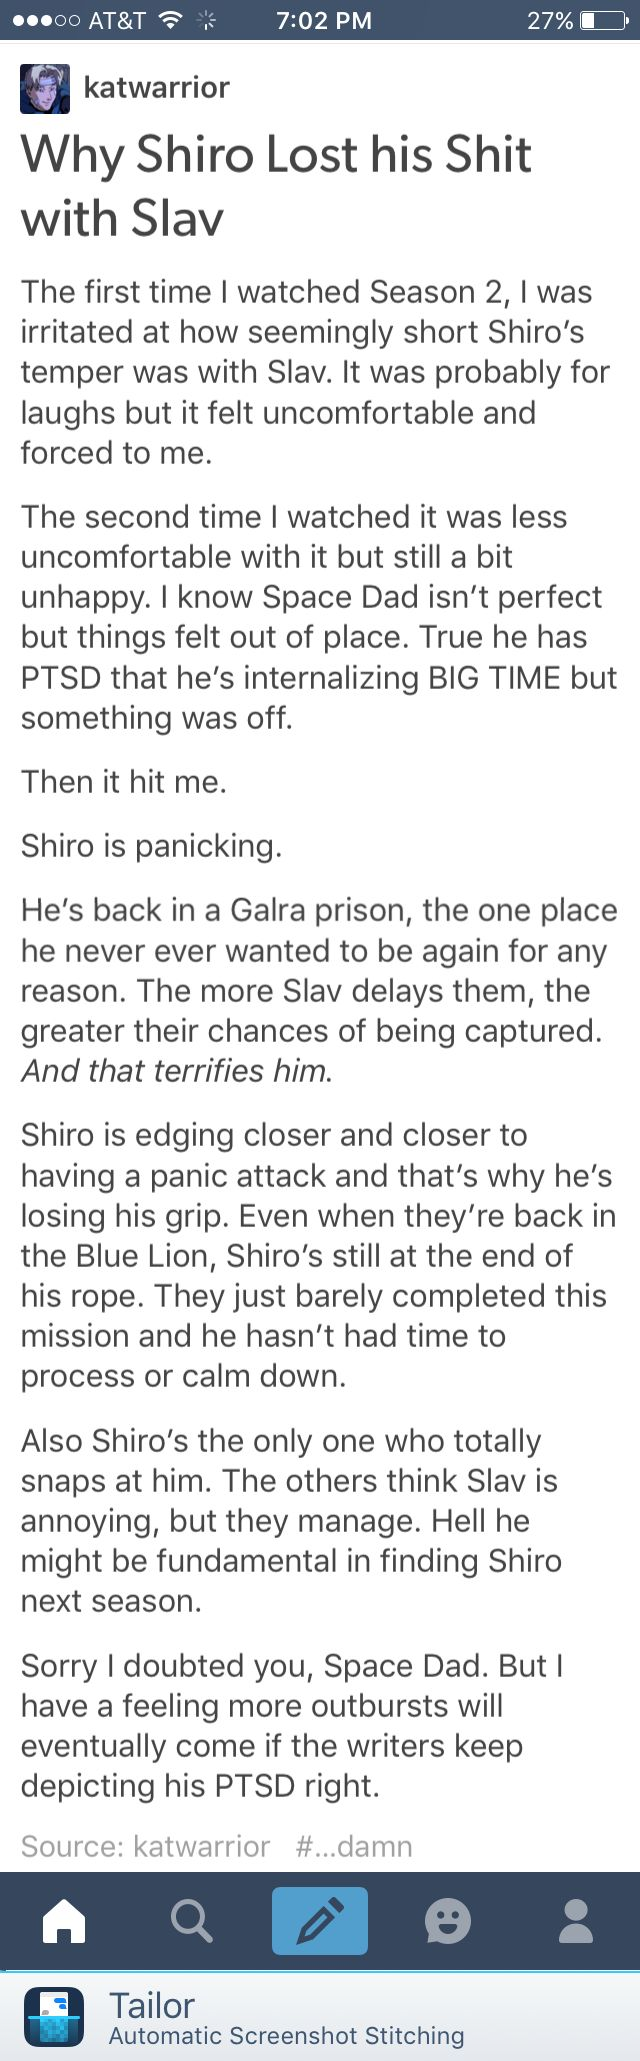 I always thought it was weird that Shiro, a patient and good person would always be snapping at him. I had a similar theory to this